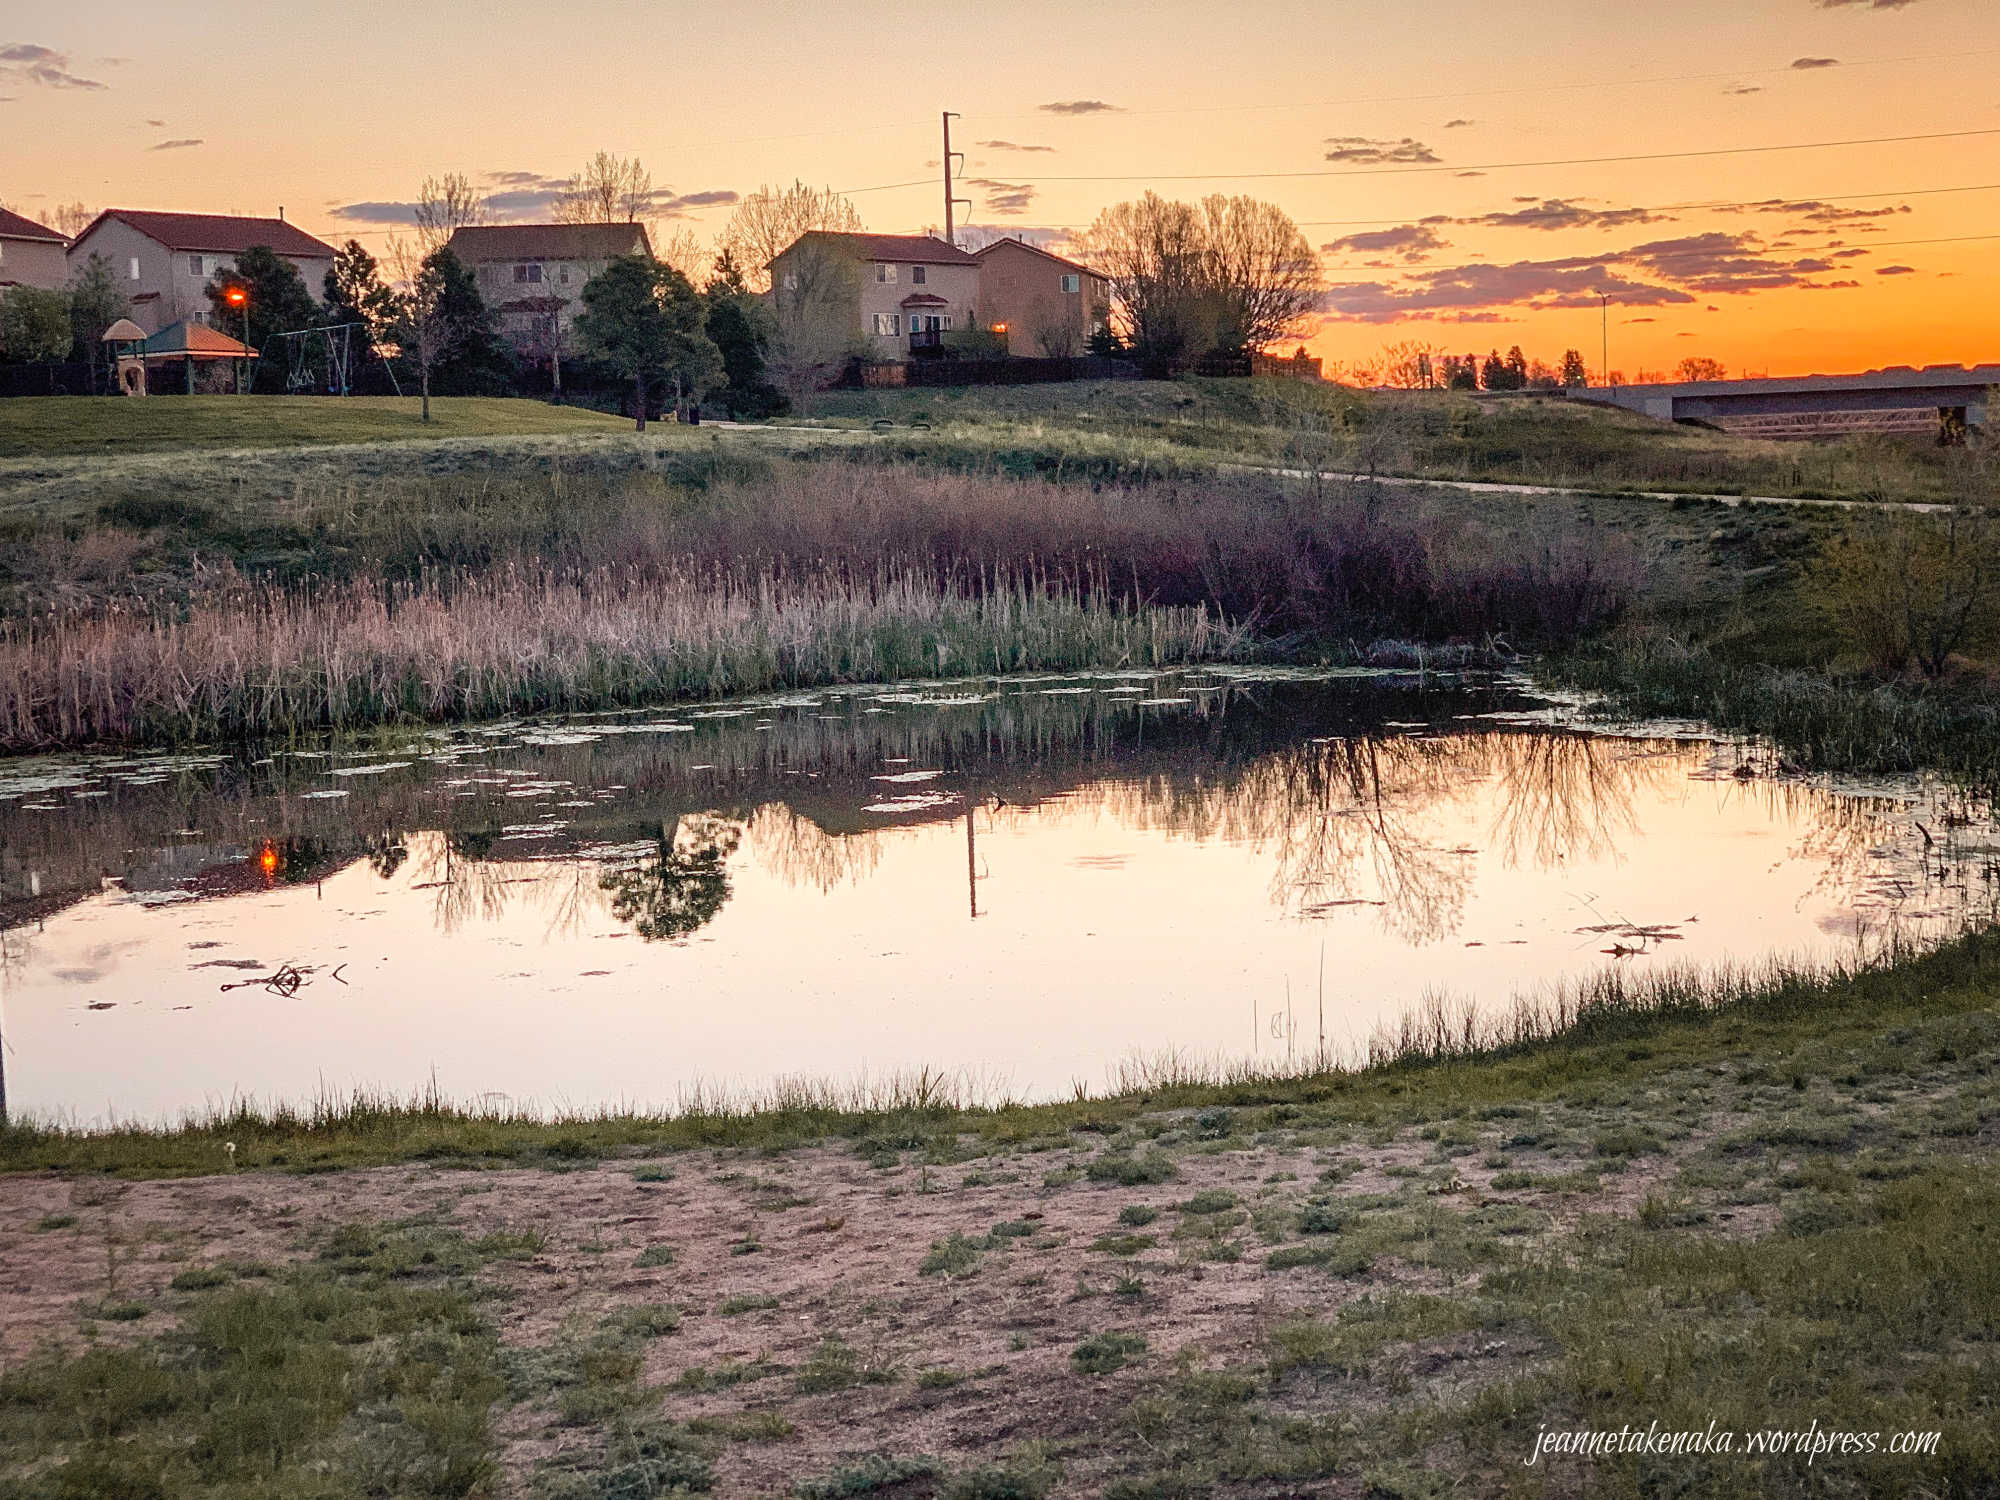 A still pond reflecting sunrise colors and the neighborhood behind it